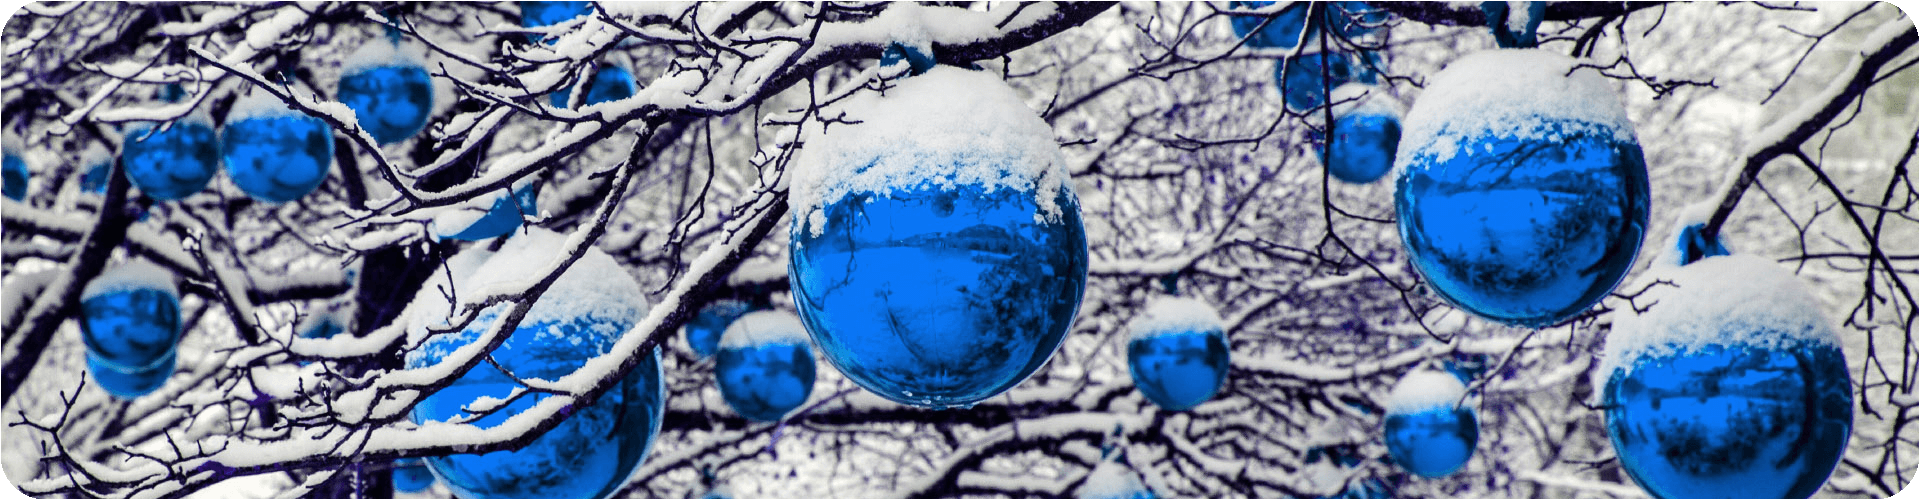 blue baubles covered with snow hanging from a tree